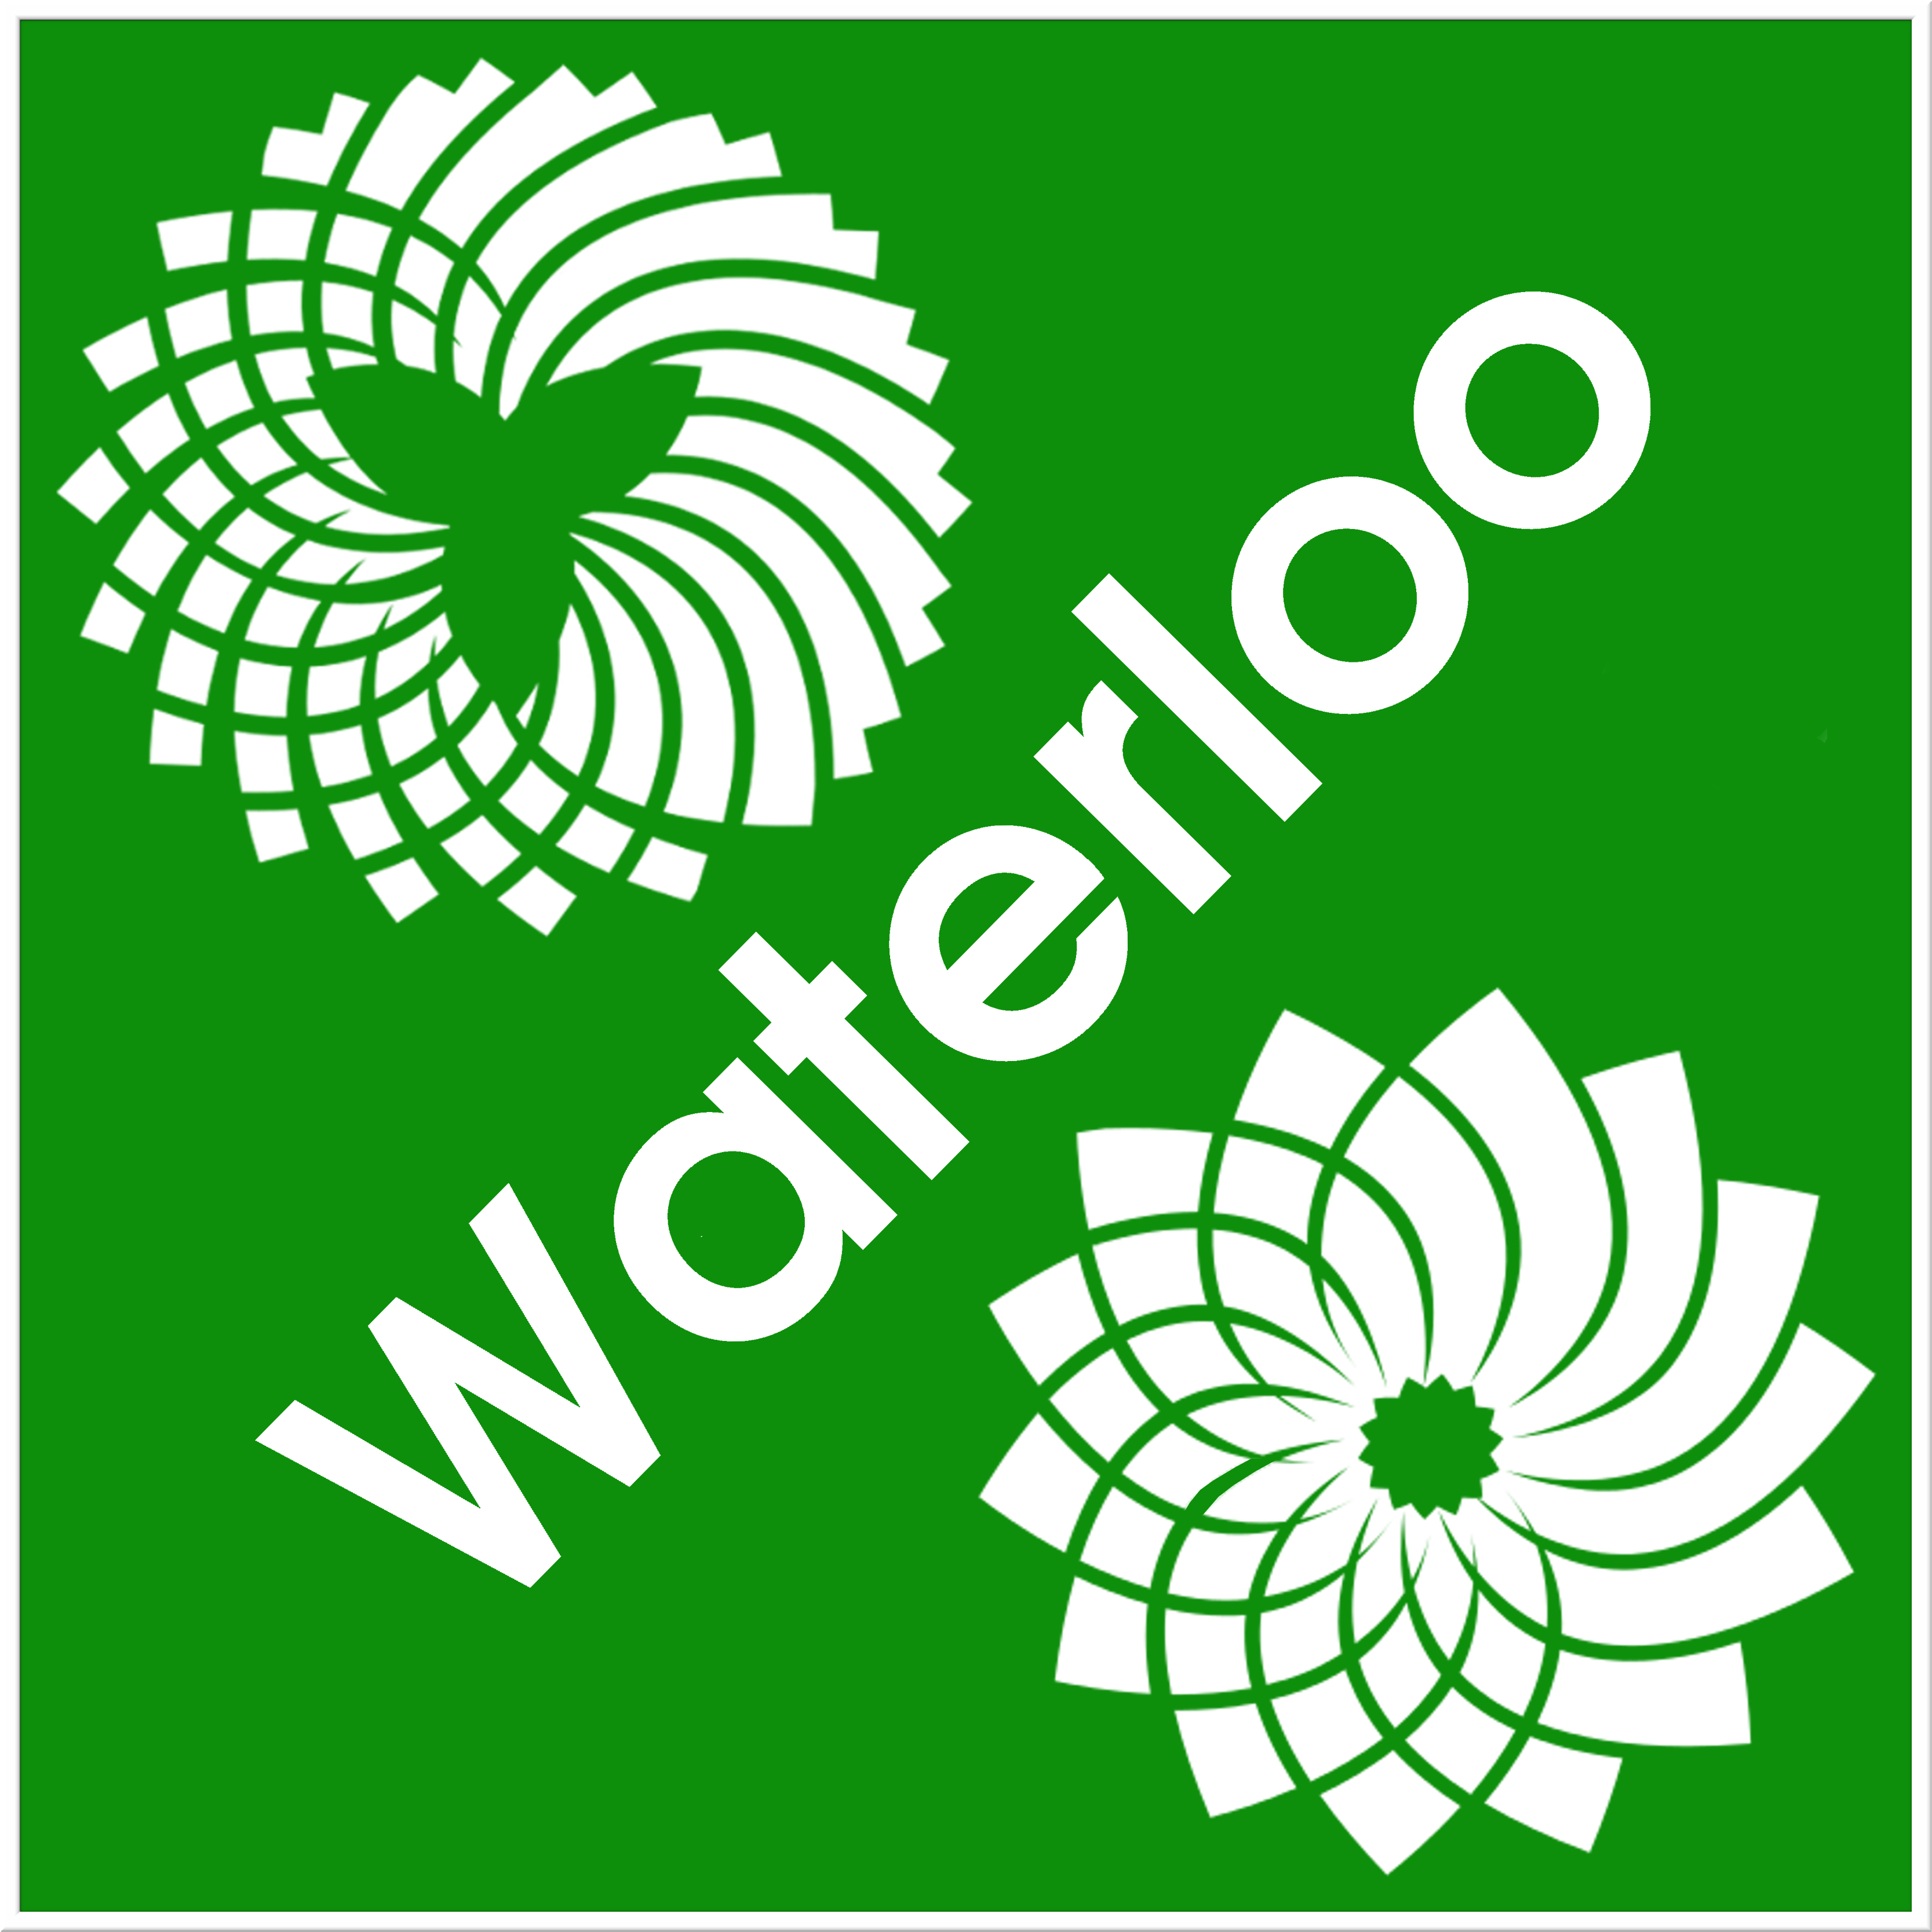 Waterloo Green Party